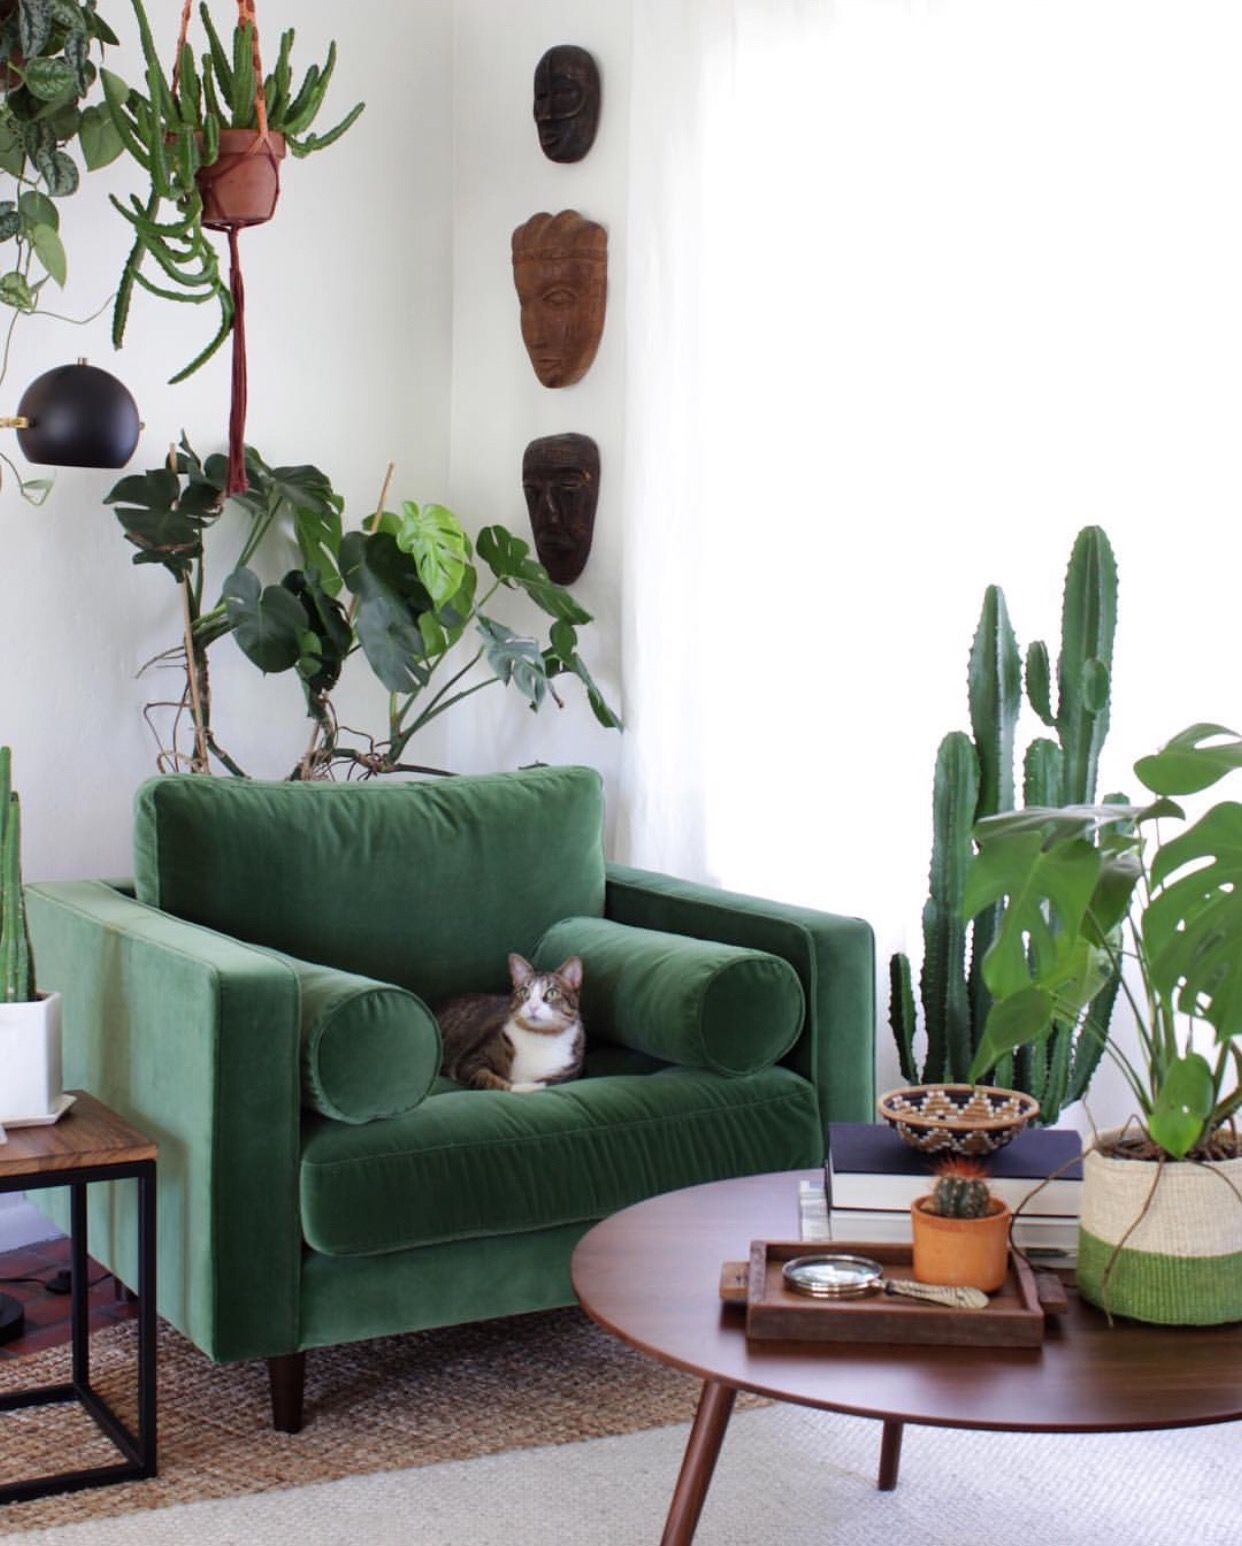 Modern Living Room With Green Armchair Surrounded By Plants And A Cute Cat Living Room Green Cheap Living Room Furniture Home Decor #nice #chair #for #living #room